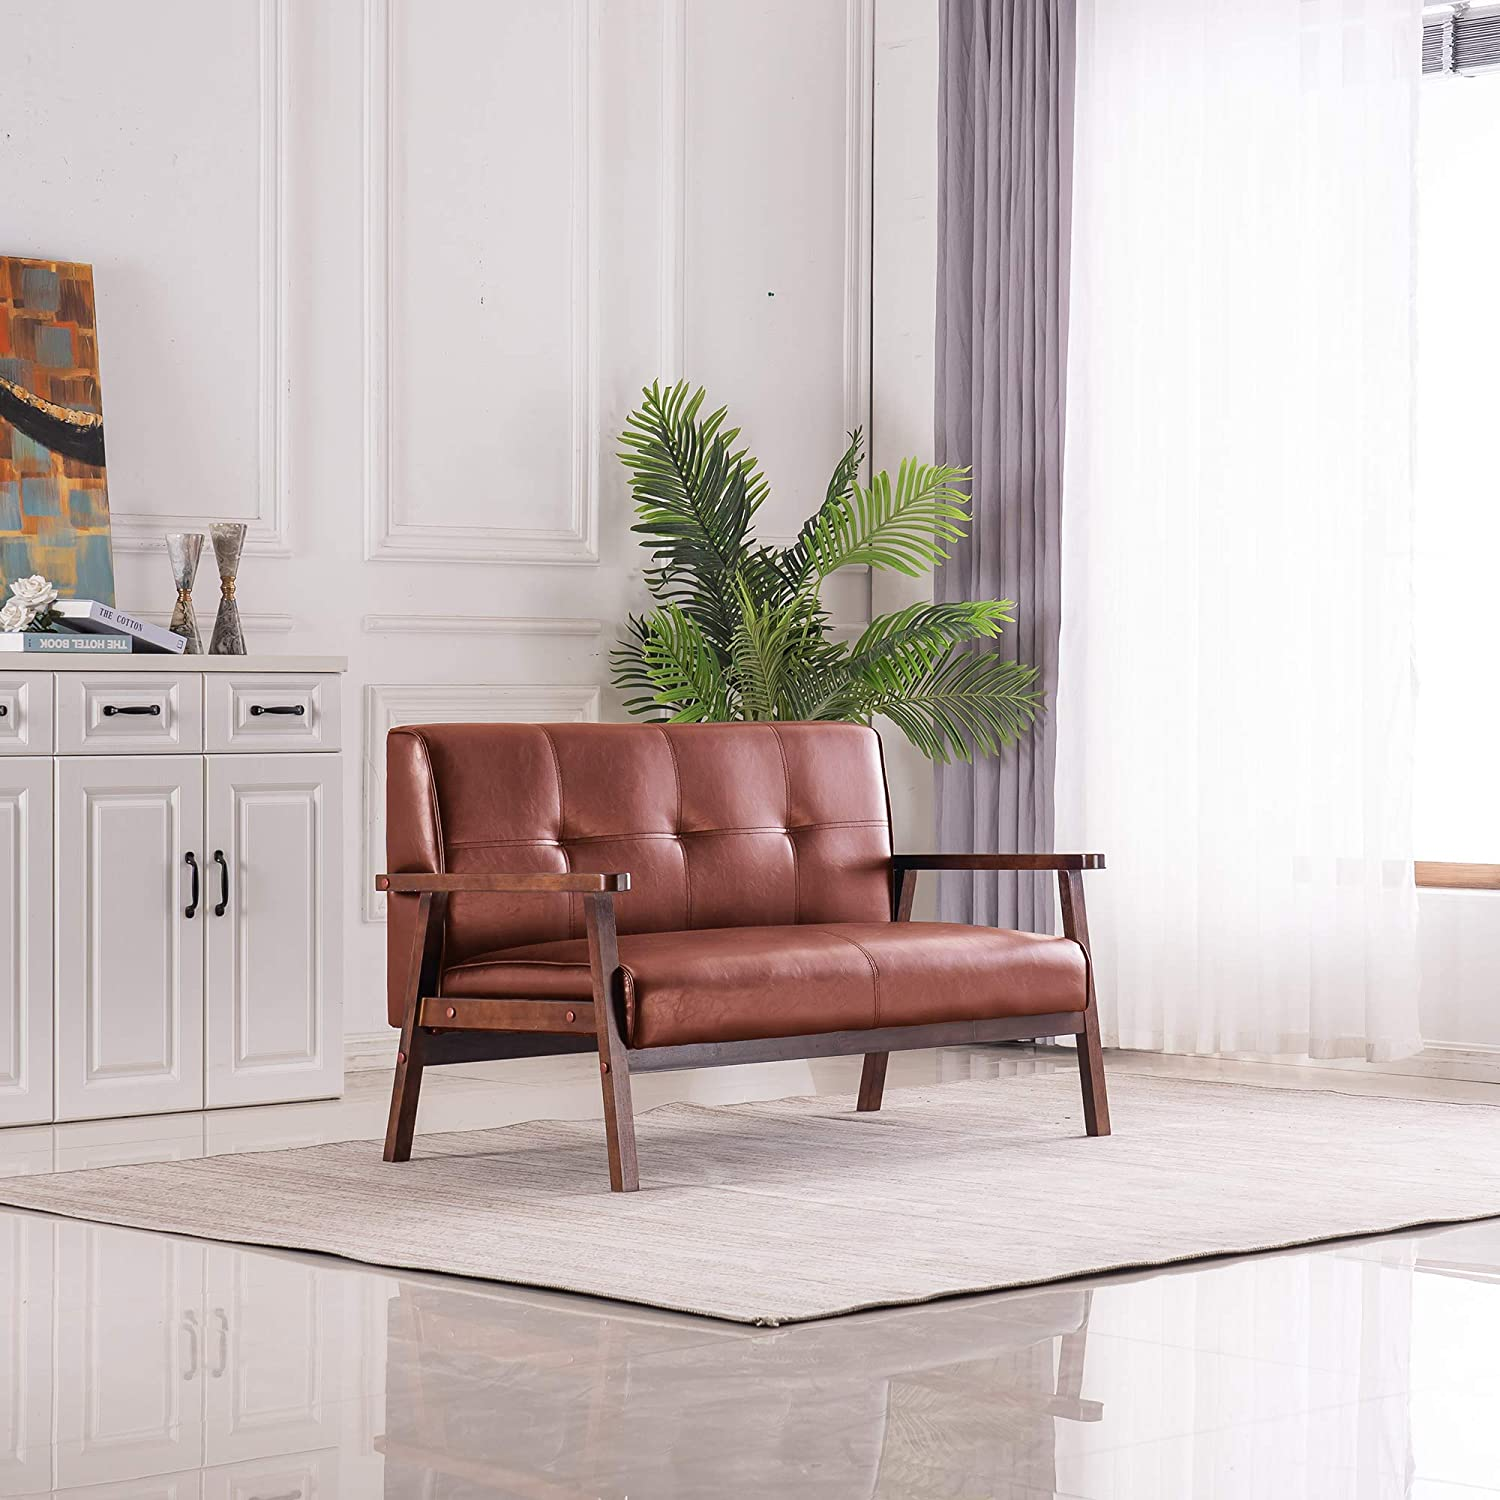 Baysitone Loveseat Sofa with Solid gift Upholstered Price reduction PU Lea Wood Legs